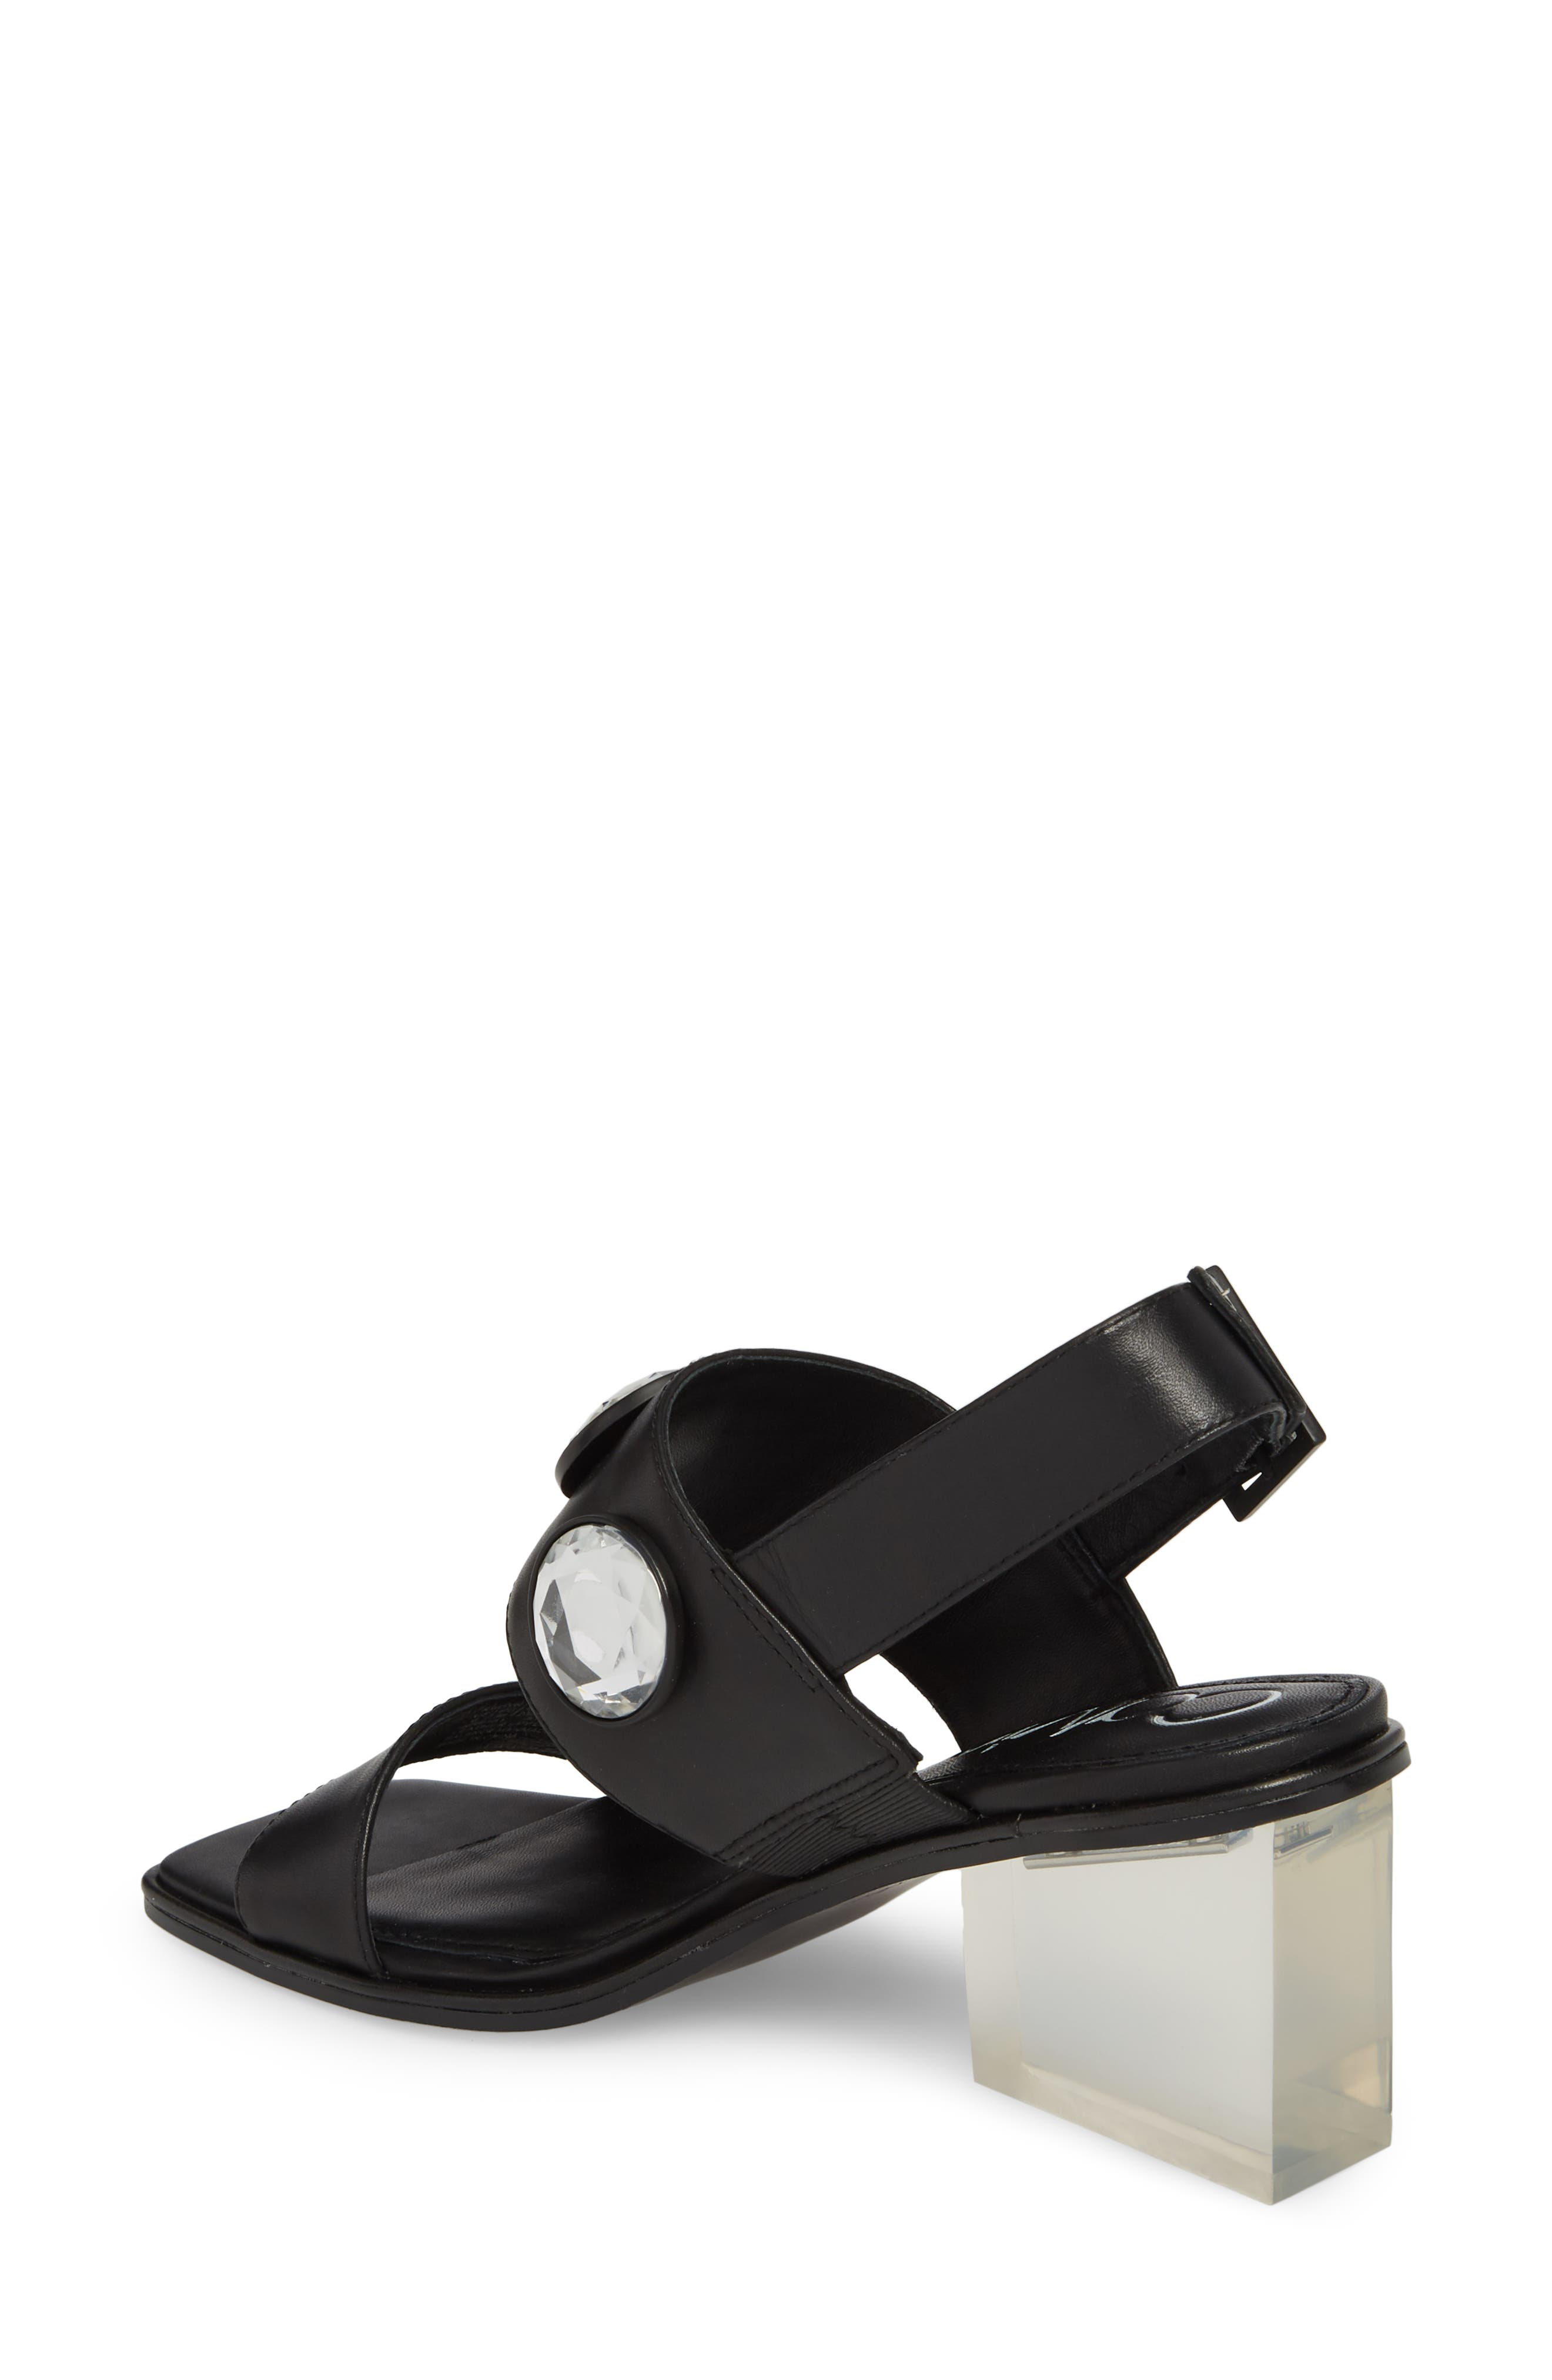 Kadyn Slingback Sandal,                             Alternate thumbnail 2, color,                             Black Leather